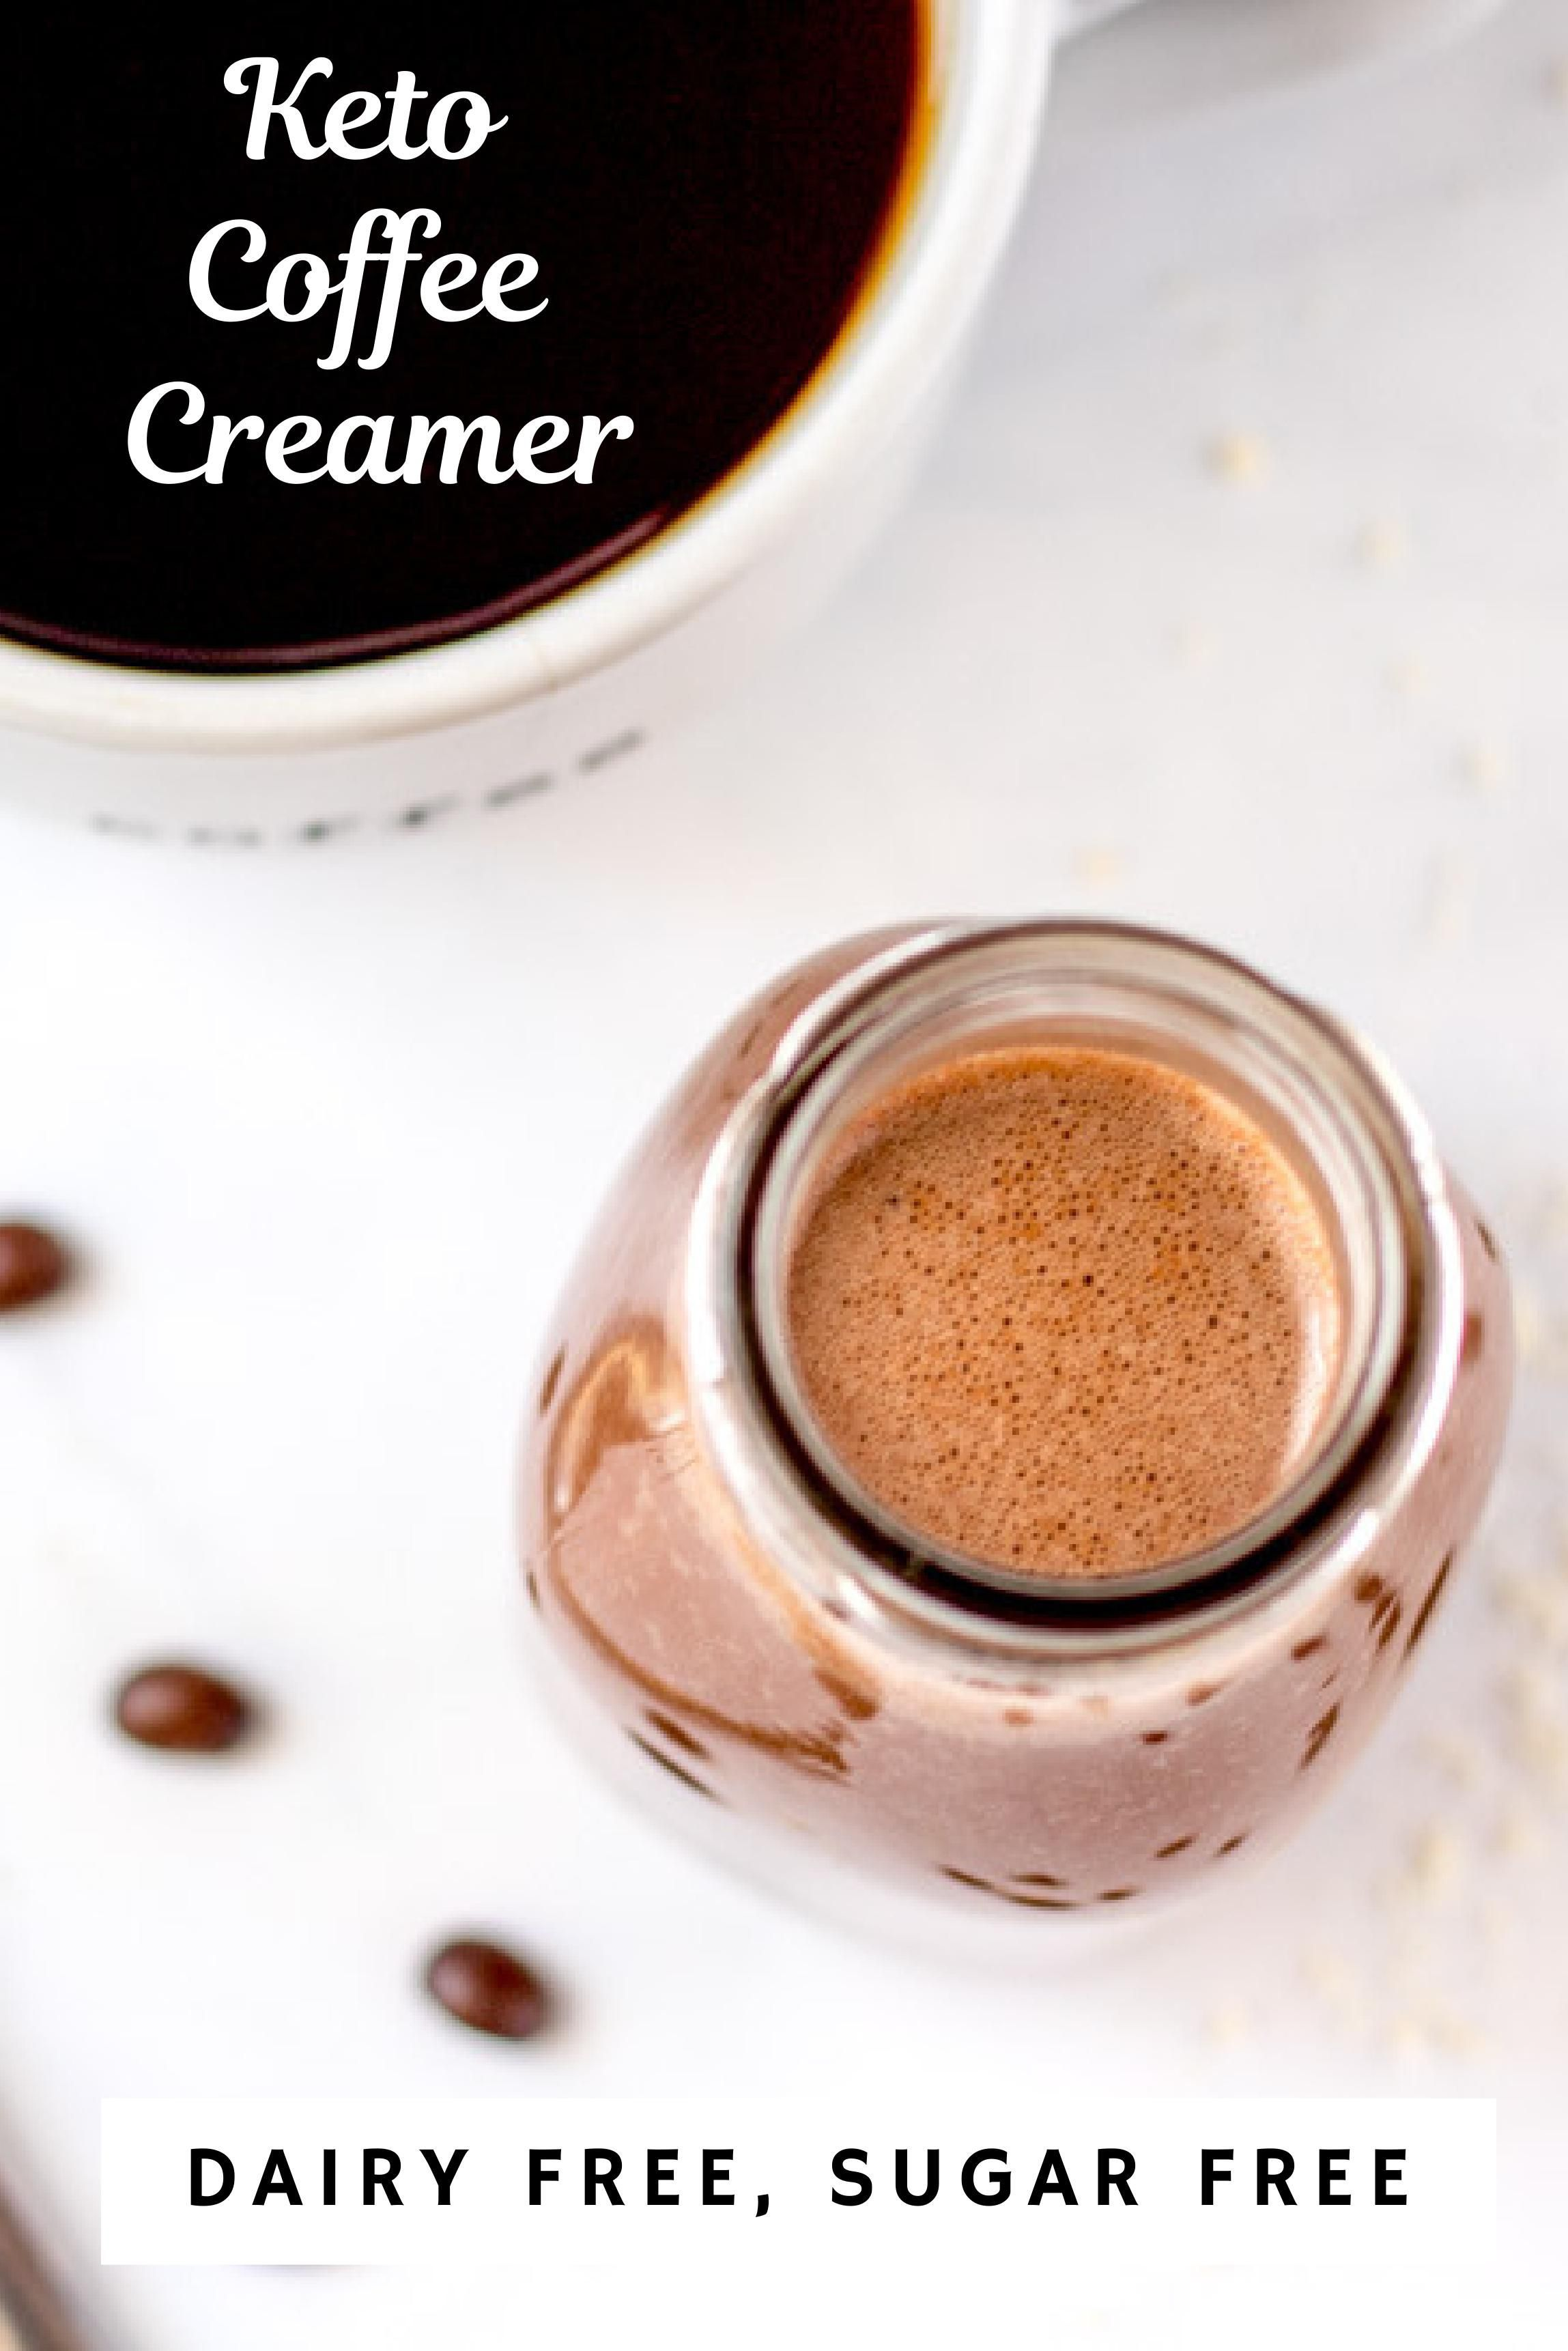 If you are missing coffee creamer on your keto diet i